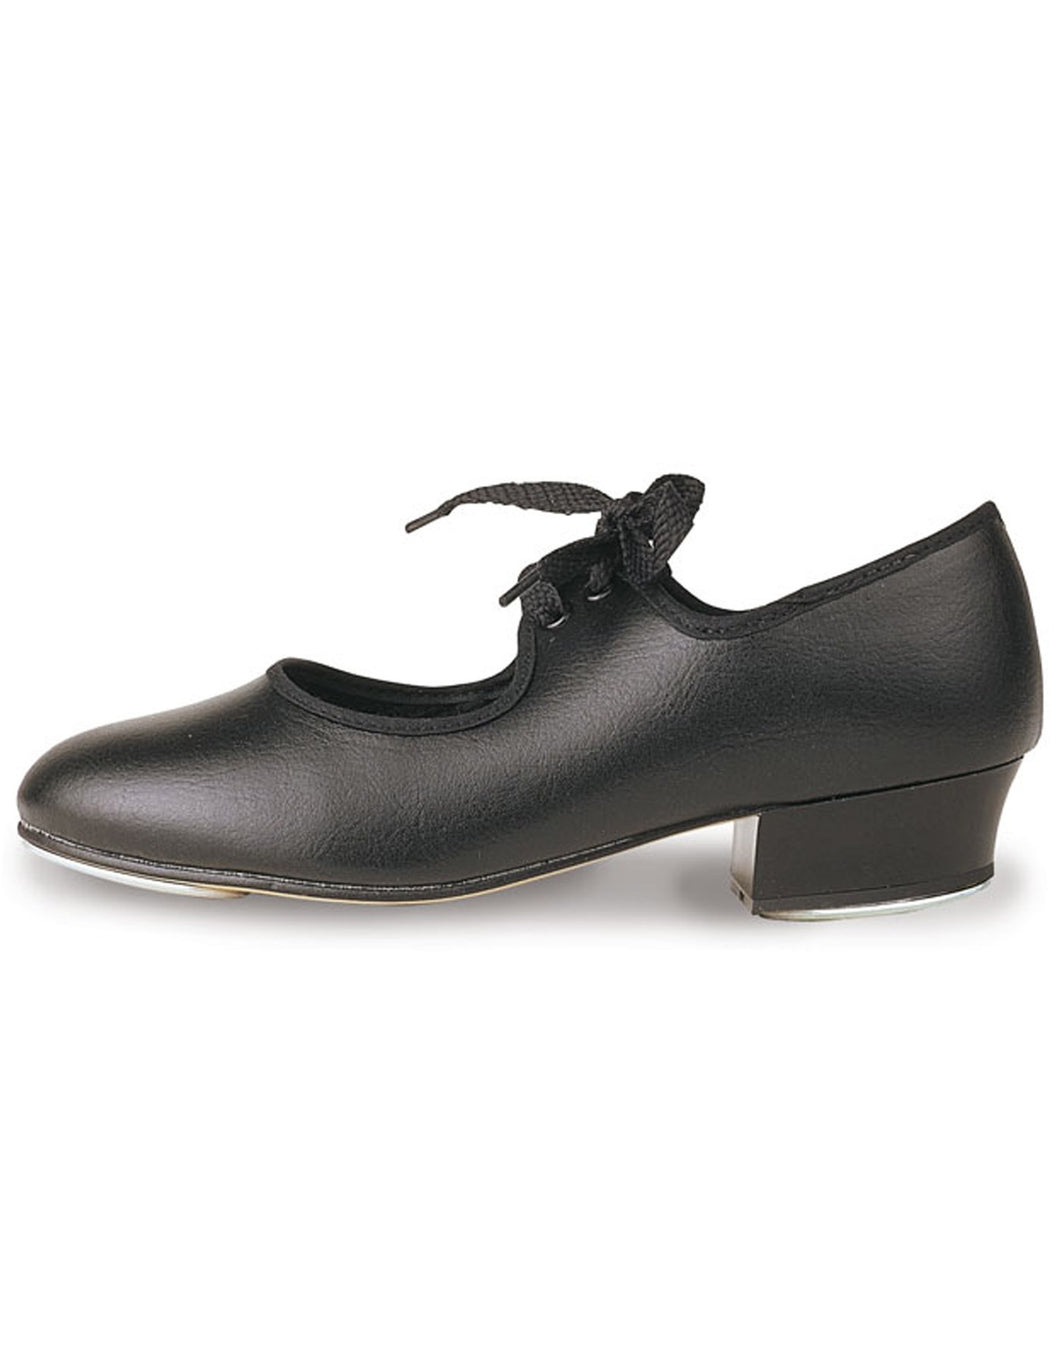 Roch Valley PU Tap Shoes